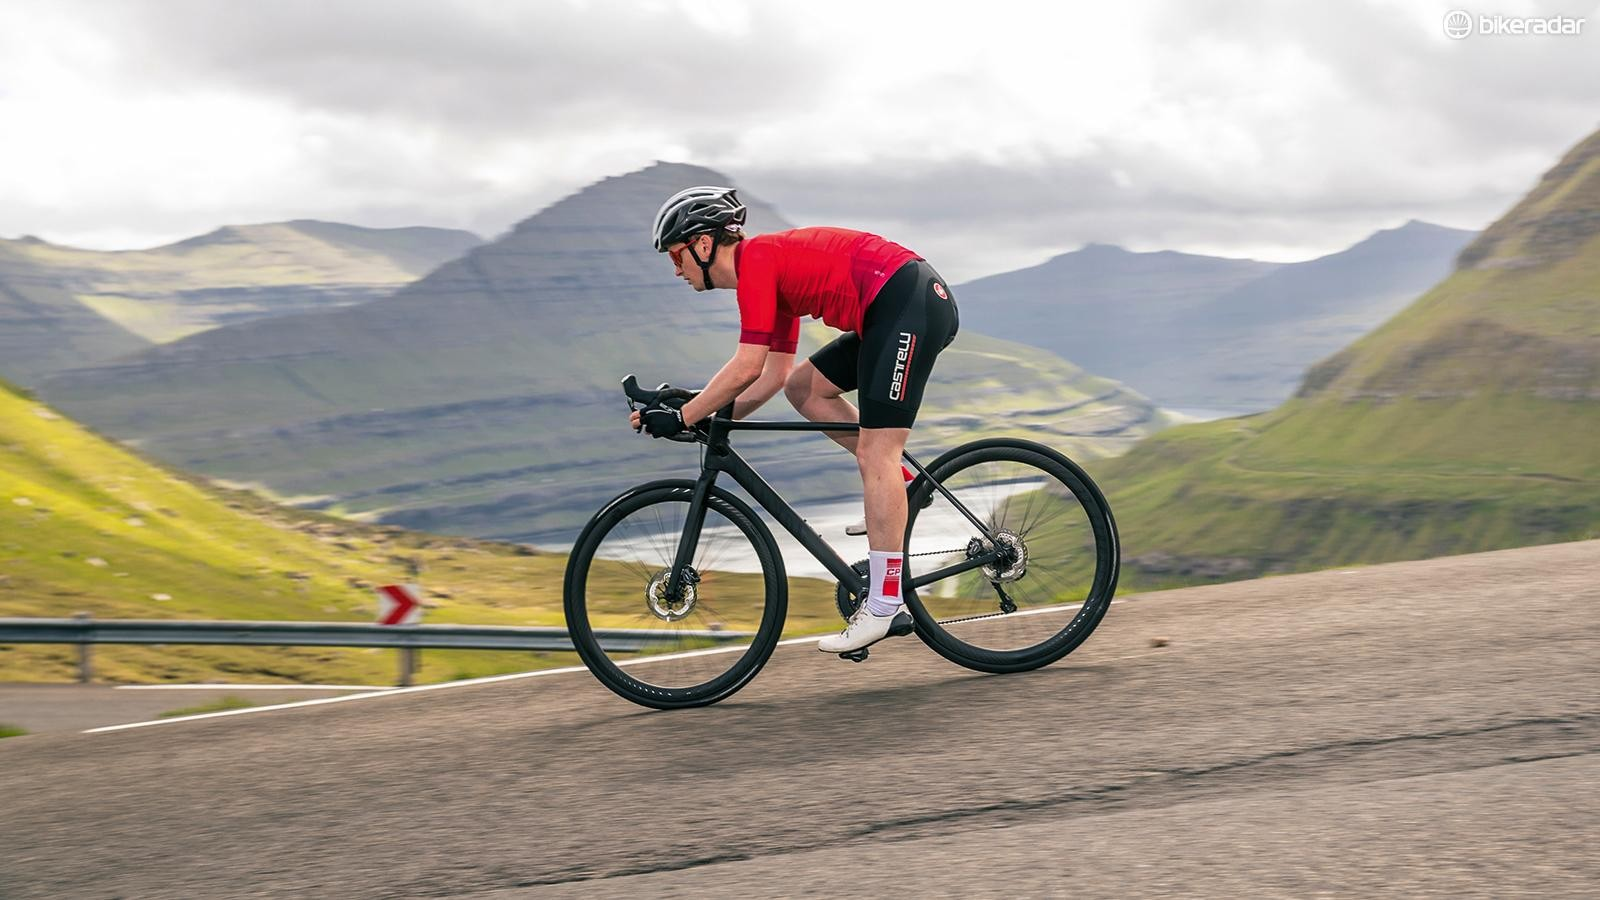 A fast, fun bike for year-round riding